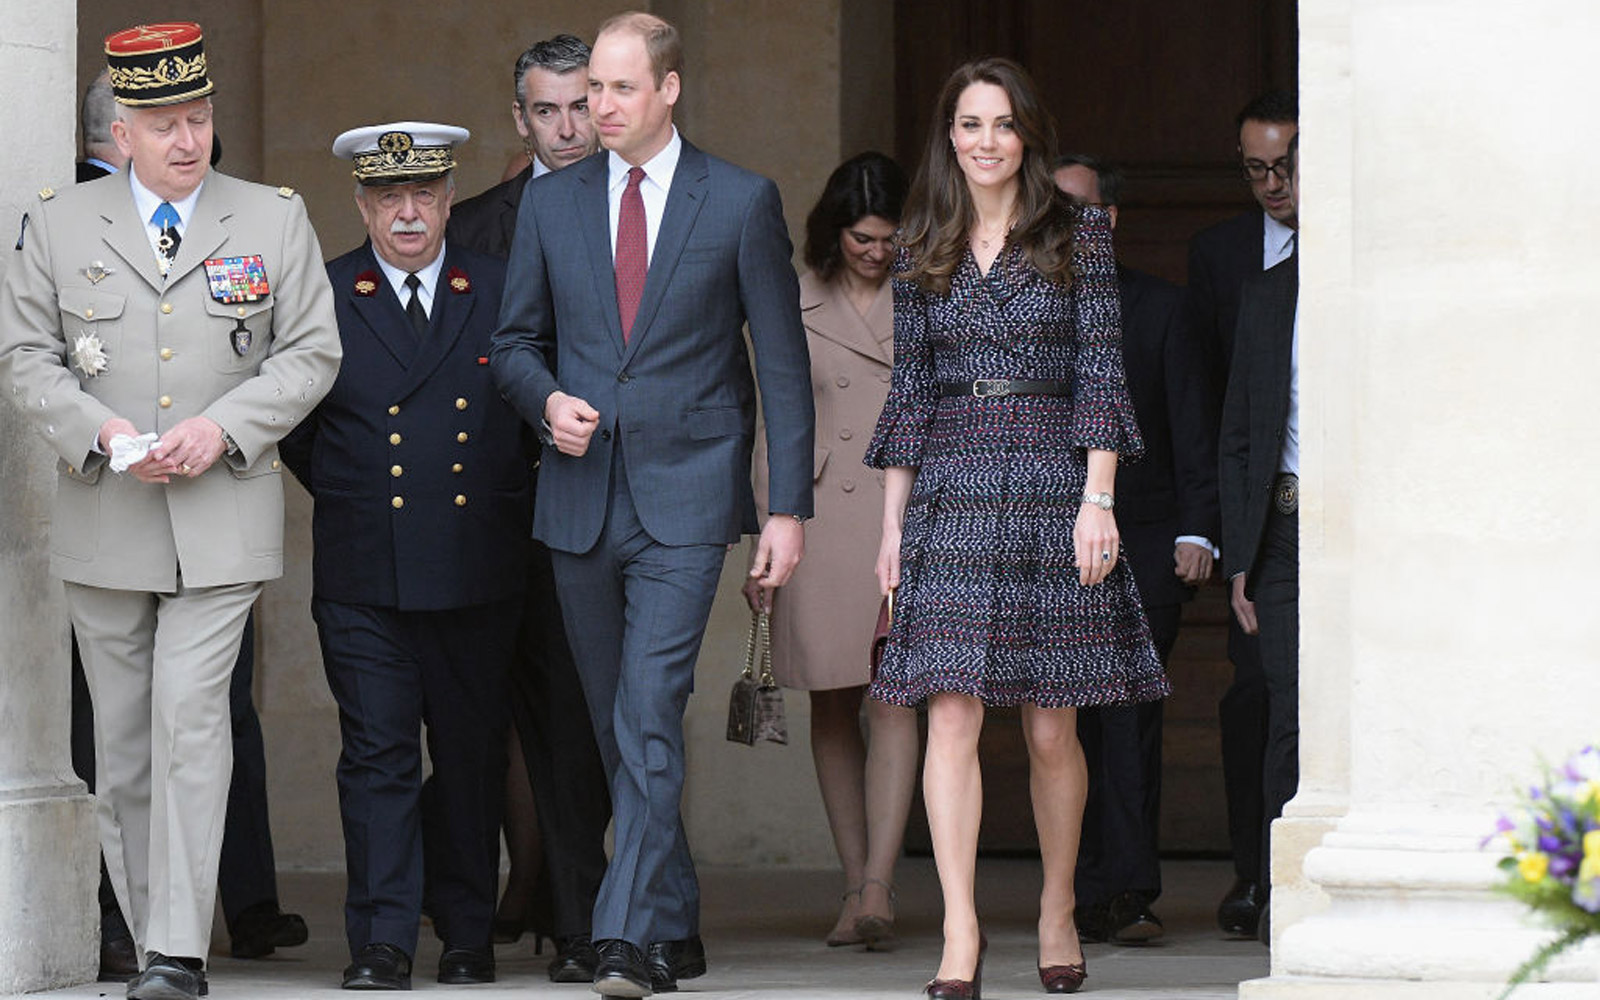 PARIS, FRANCE - MARCH 18:  General Bertrand Ract Madoux (L), Governor of Invalides,  Prince William, Duke of Cambridge (C)  Catherine, Duchess of Cambridge (R) Leave after a visit at the hotel des invalide on March 18, 2017 in Paris, France. The Duke and